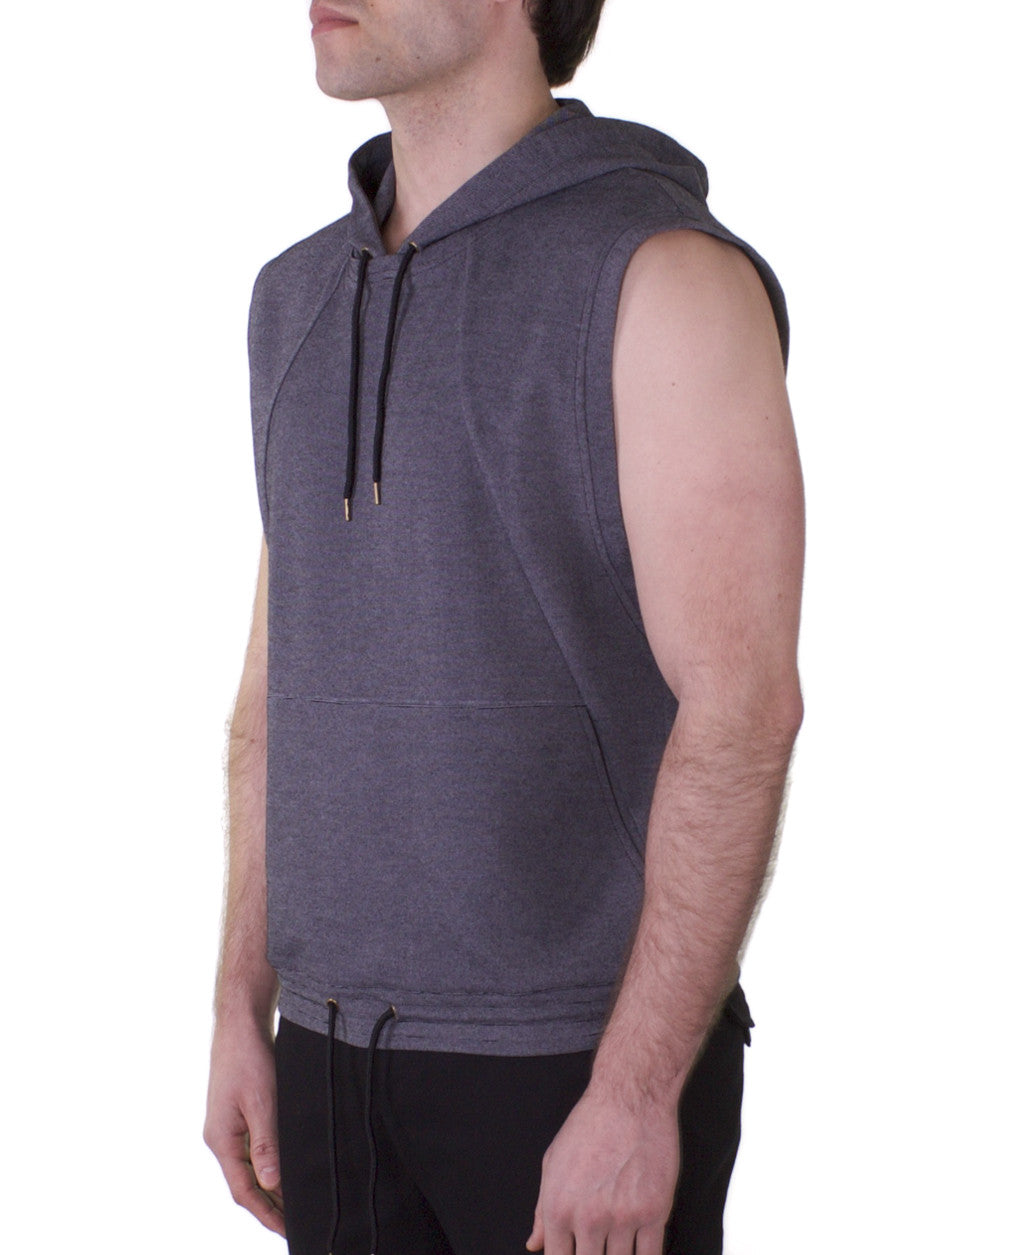 Grey sleeveless hooded top